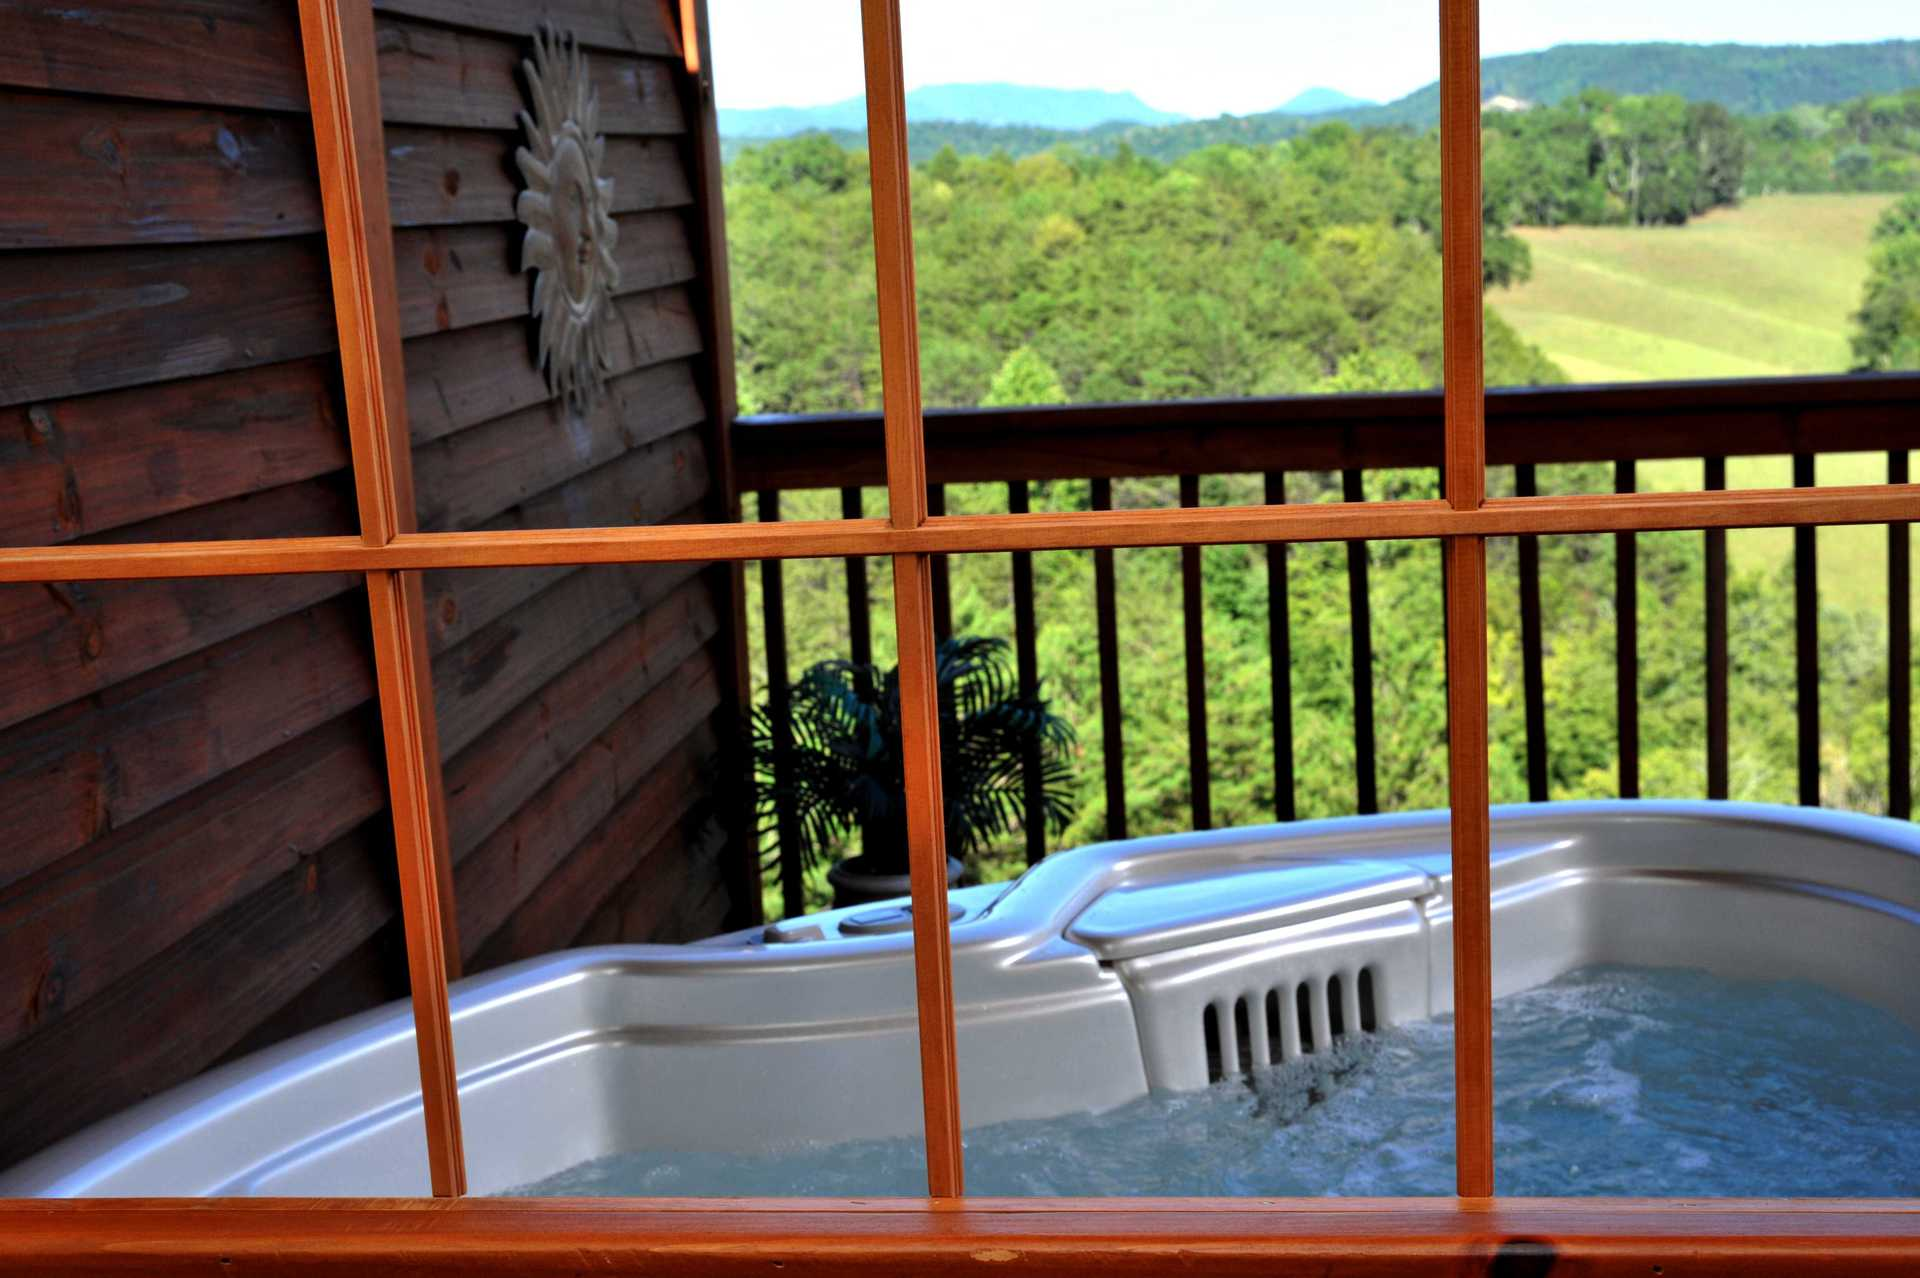 hot tub window view